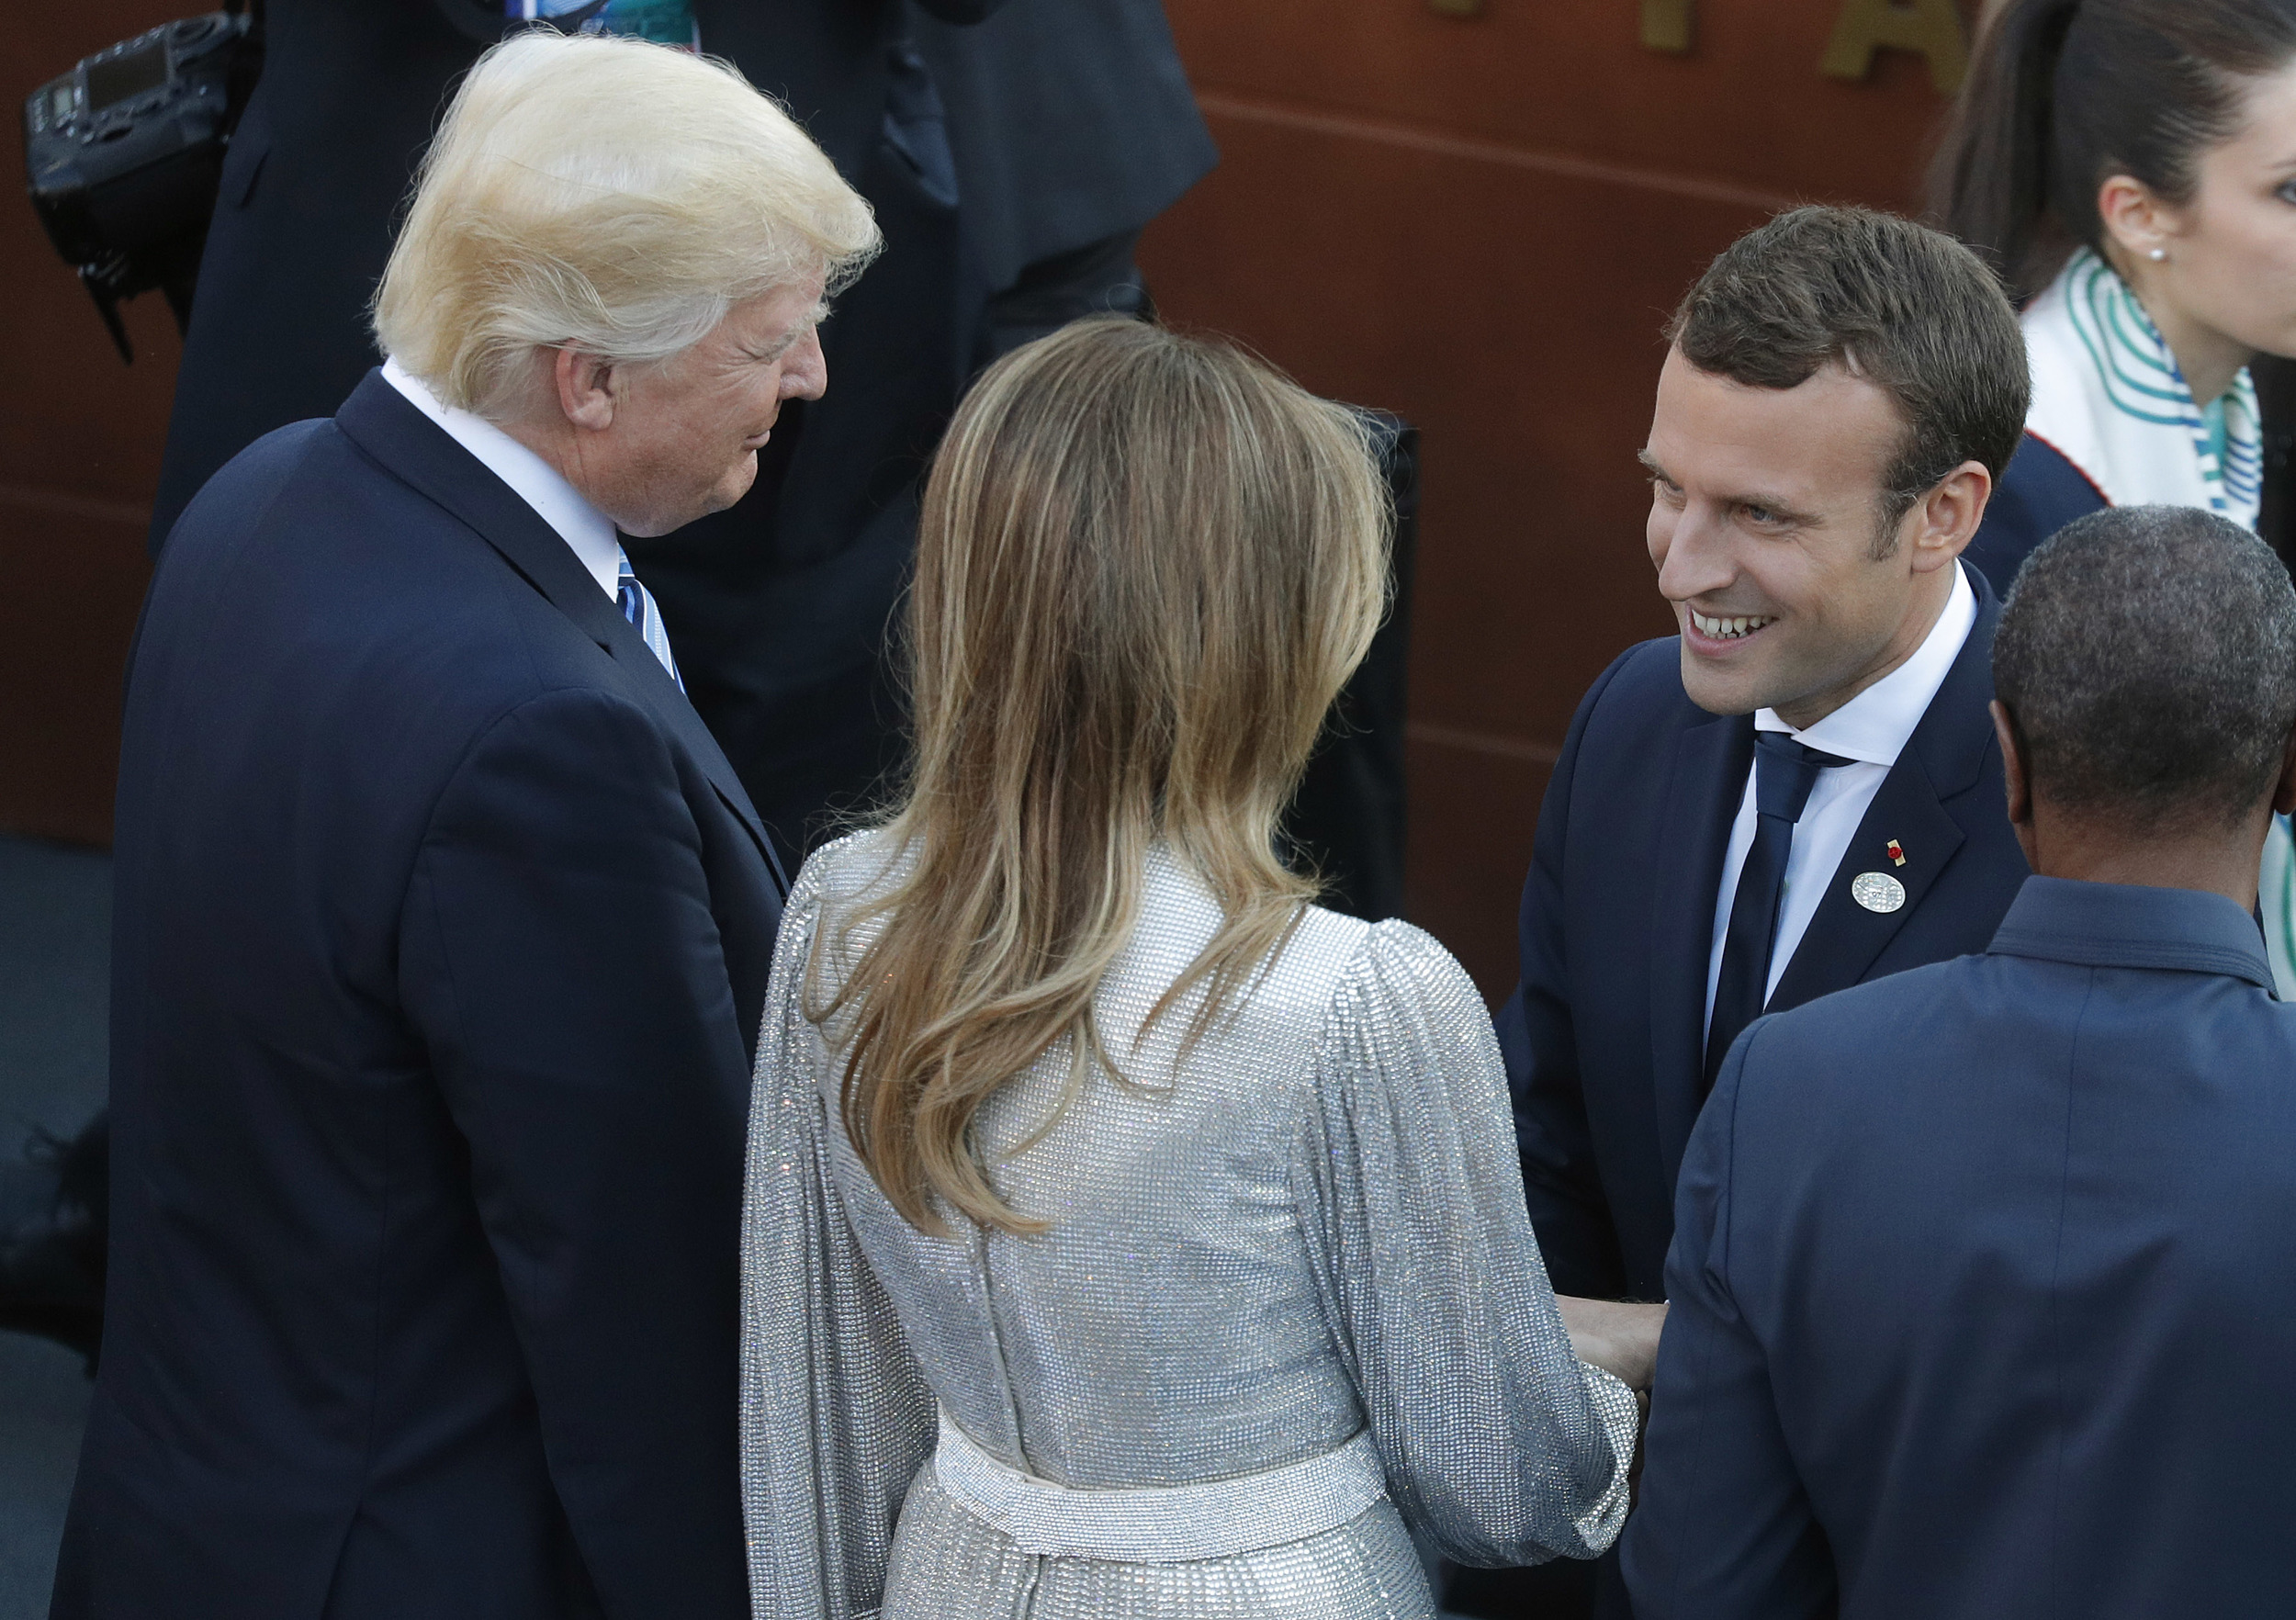 Trump, arriving in Paris, lashes out at Macron over defense remarks